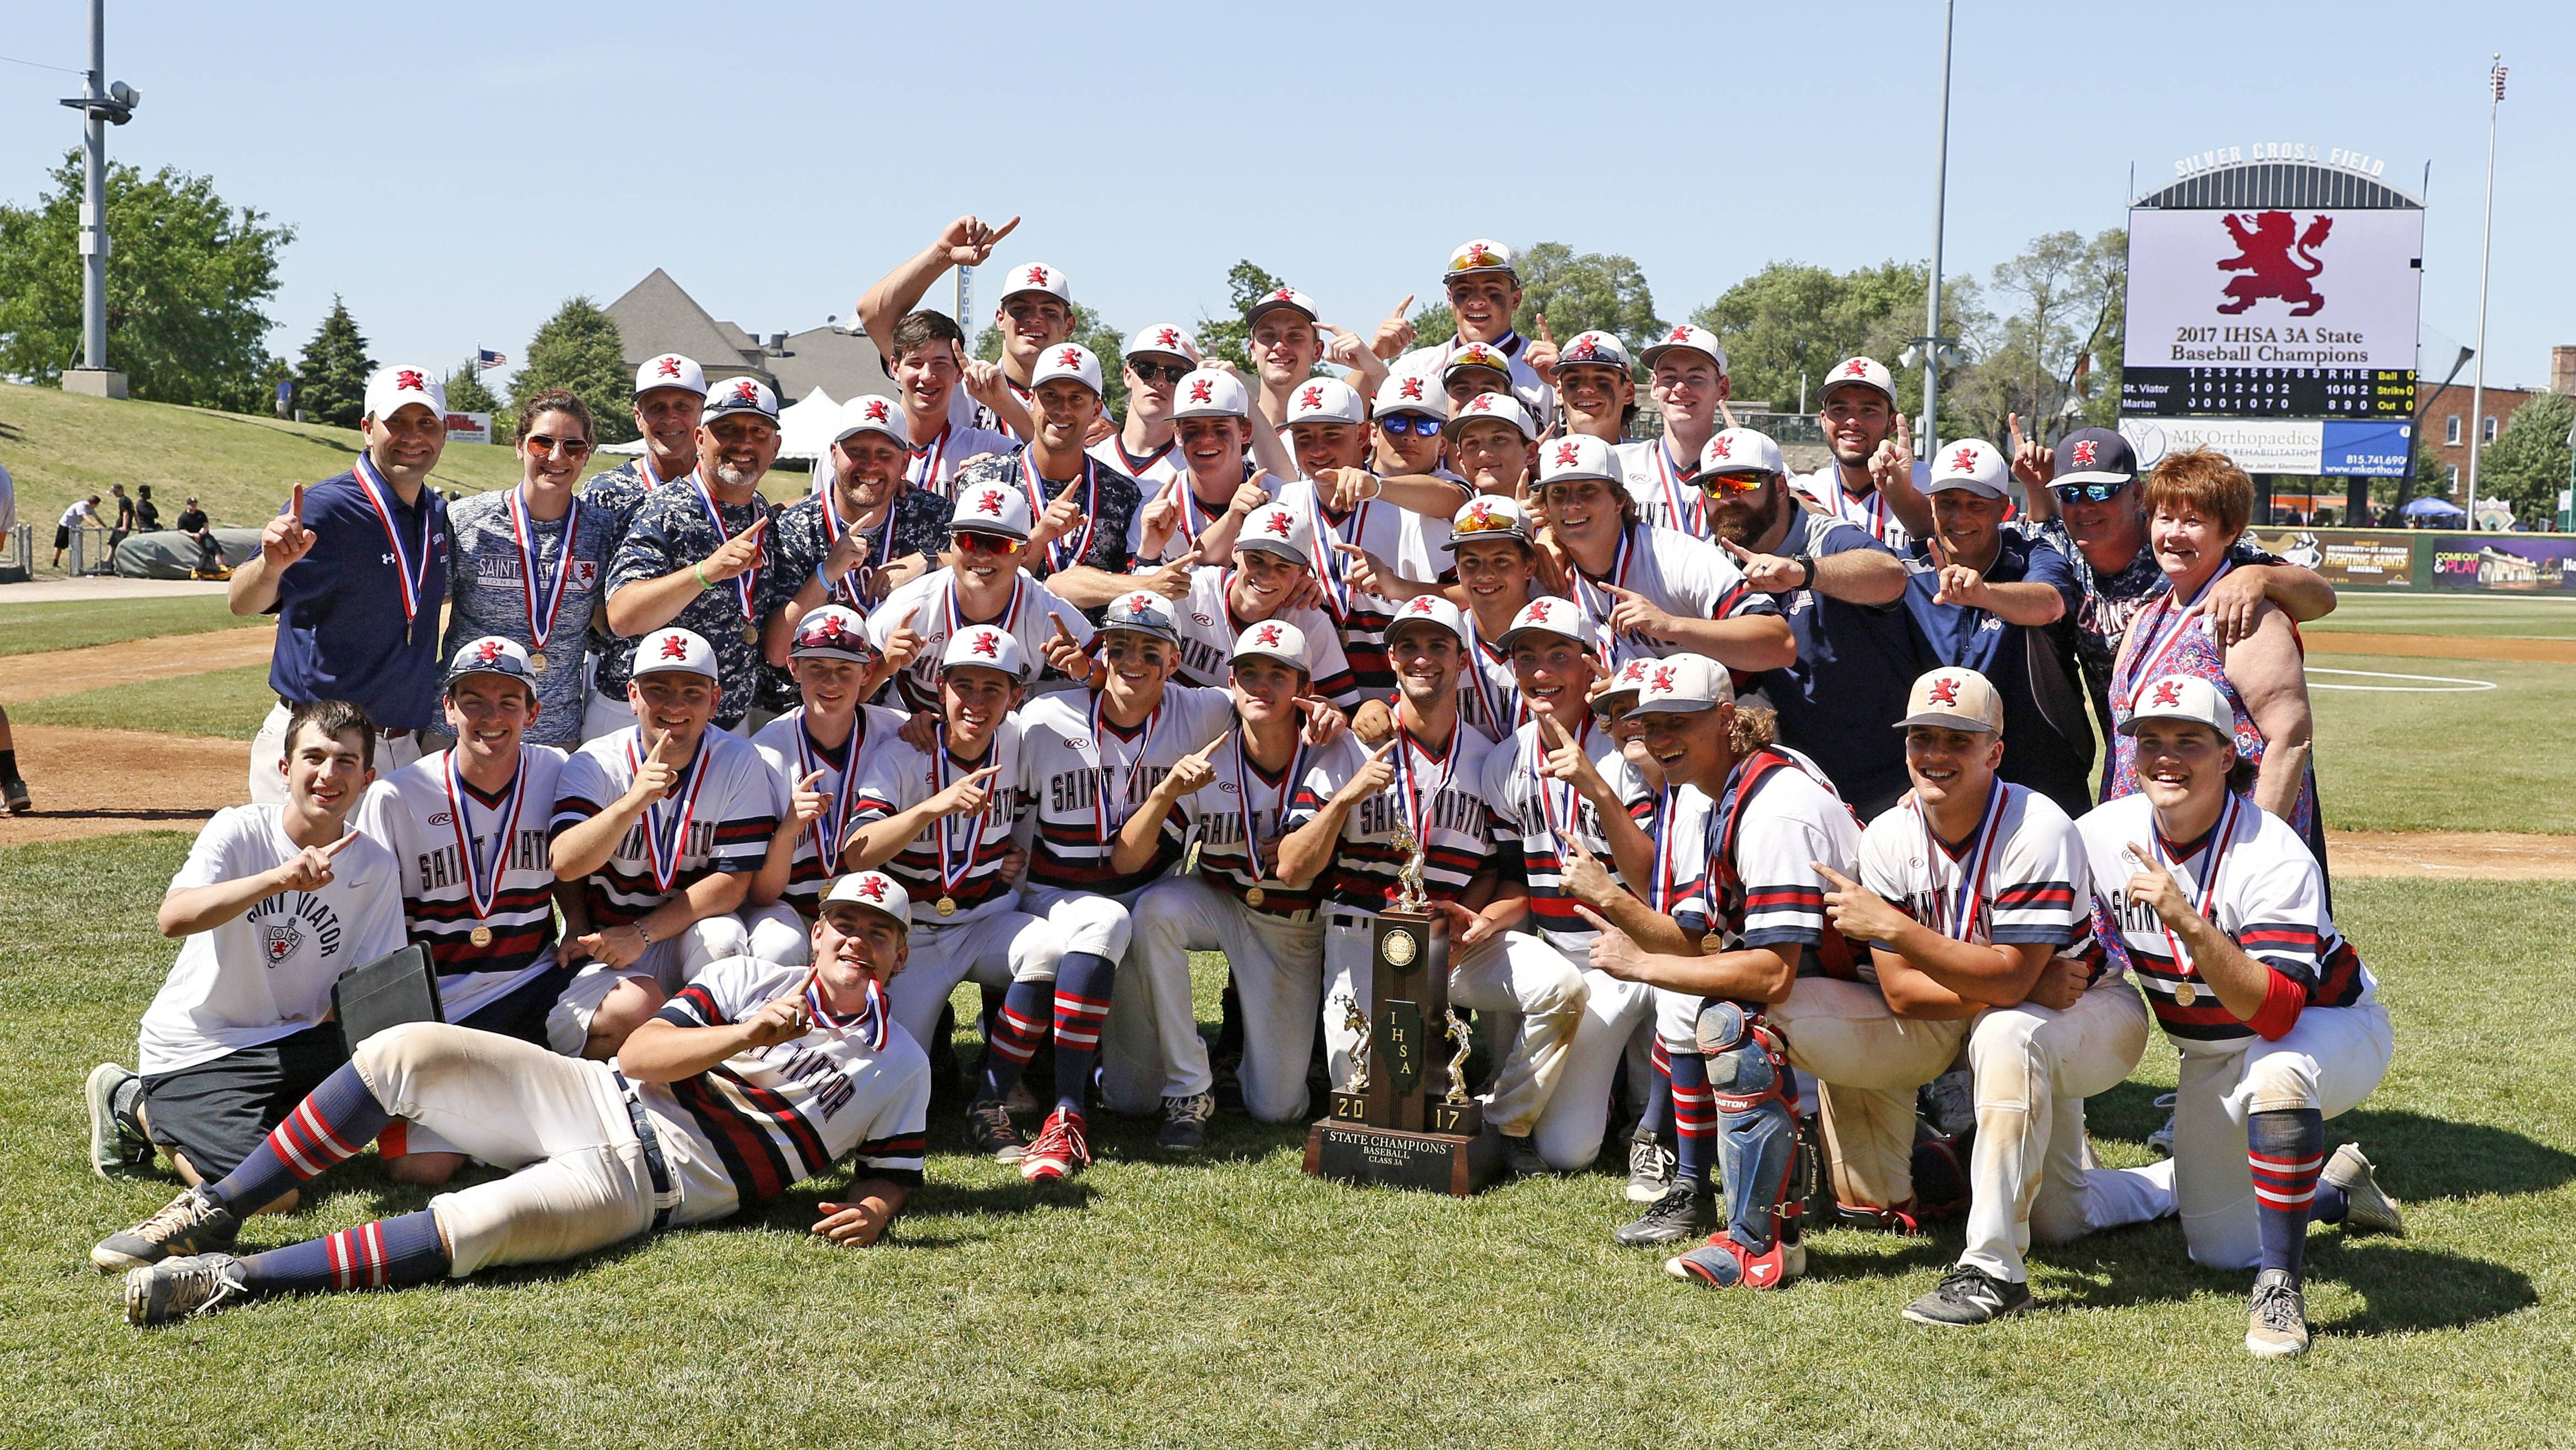 St. Viator baseball players celebrate their Class 3A state championship with a 10-8 win over Marian Catholic on Saturday in Joliet.